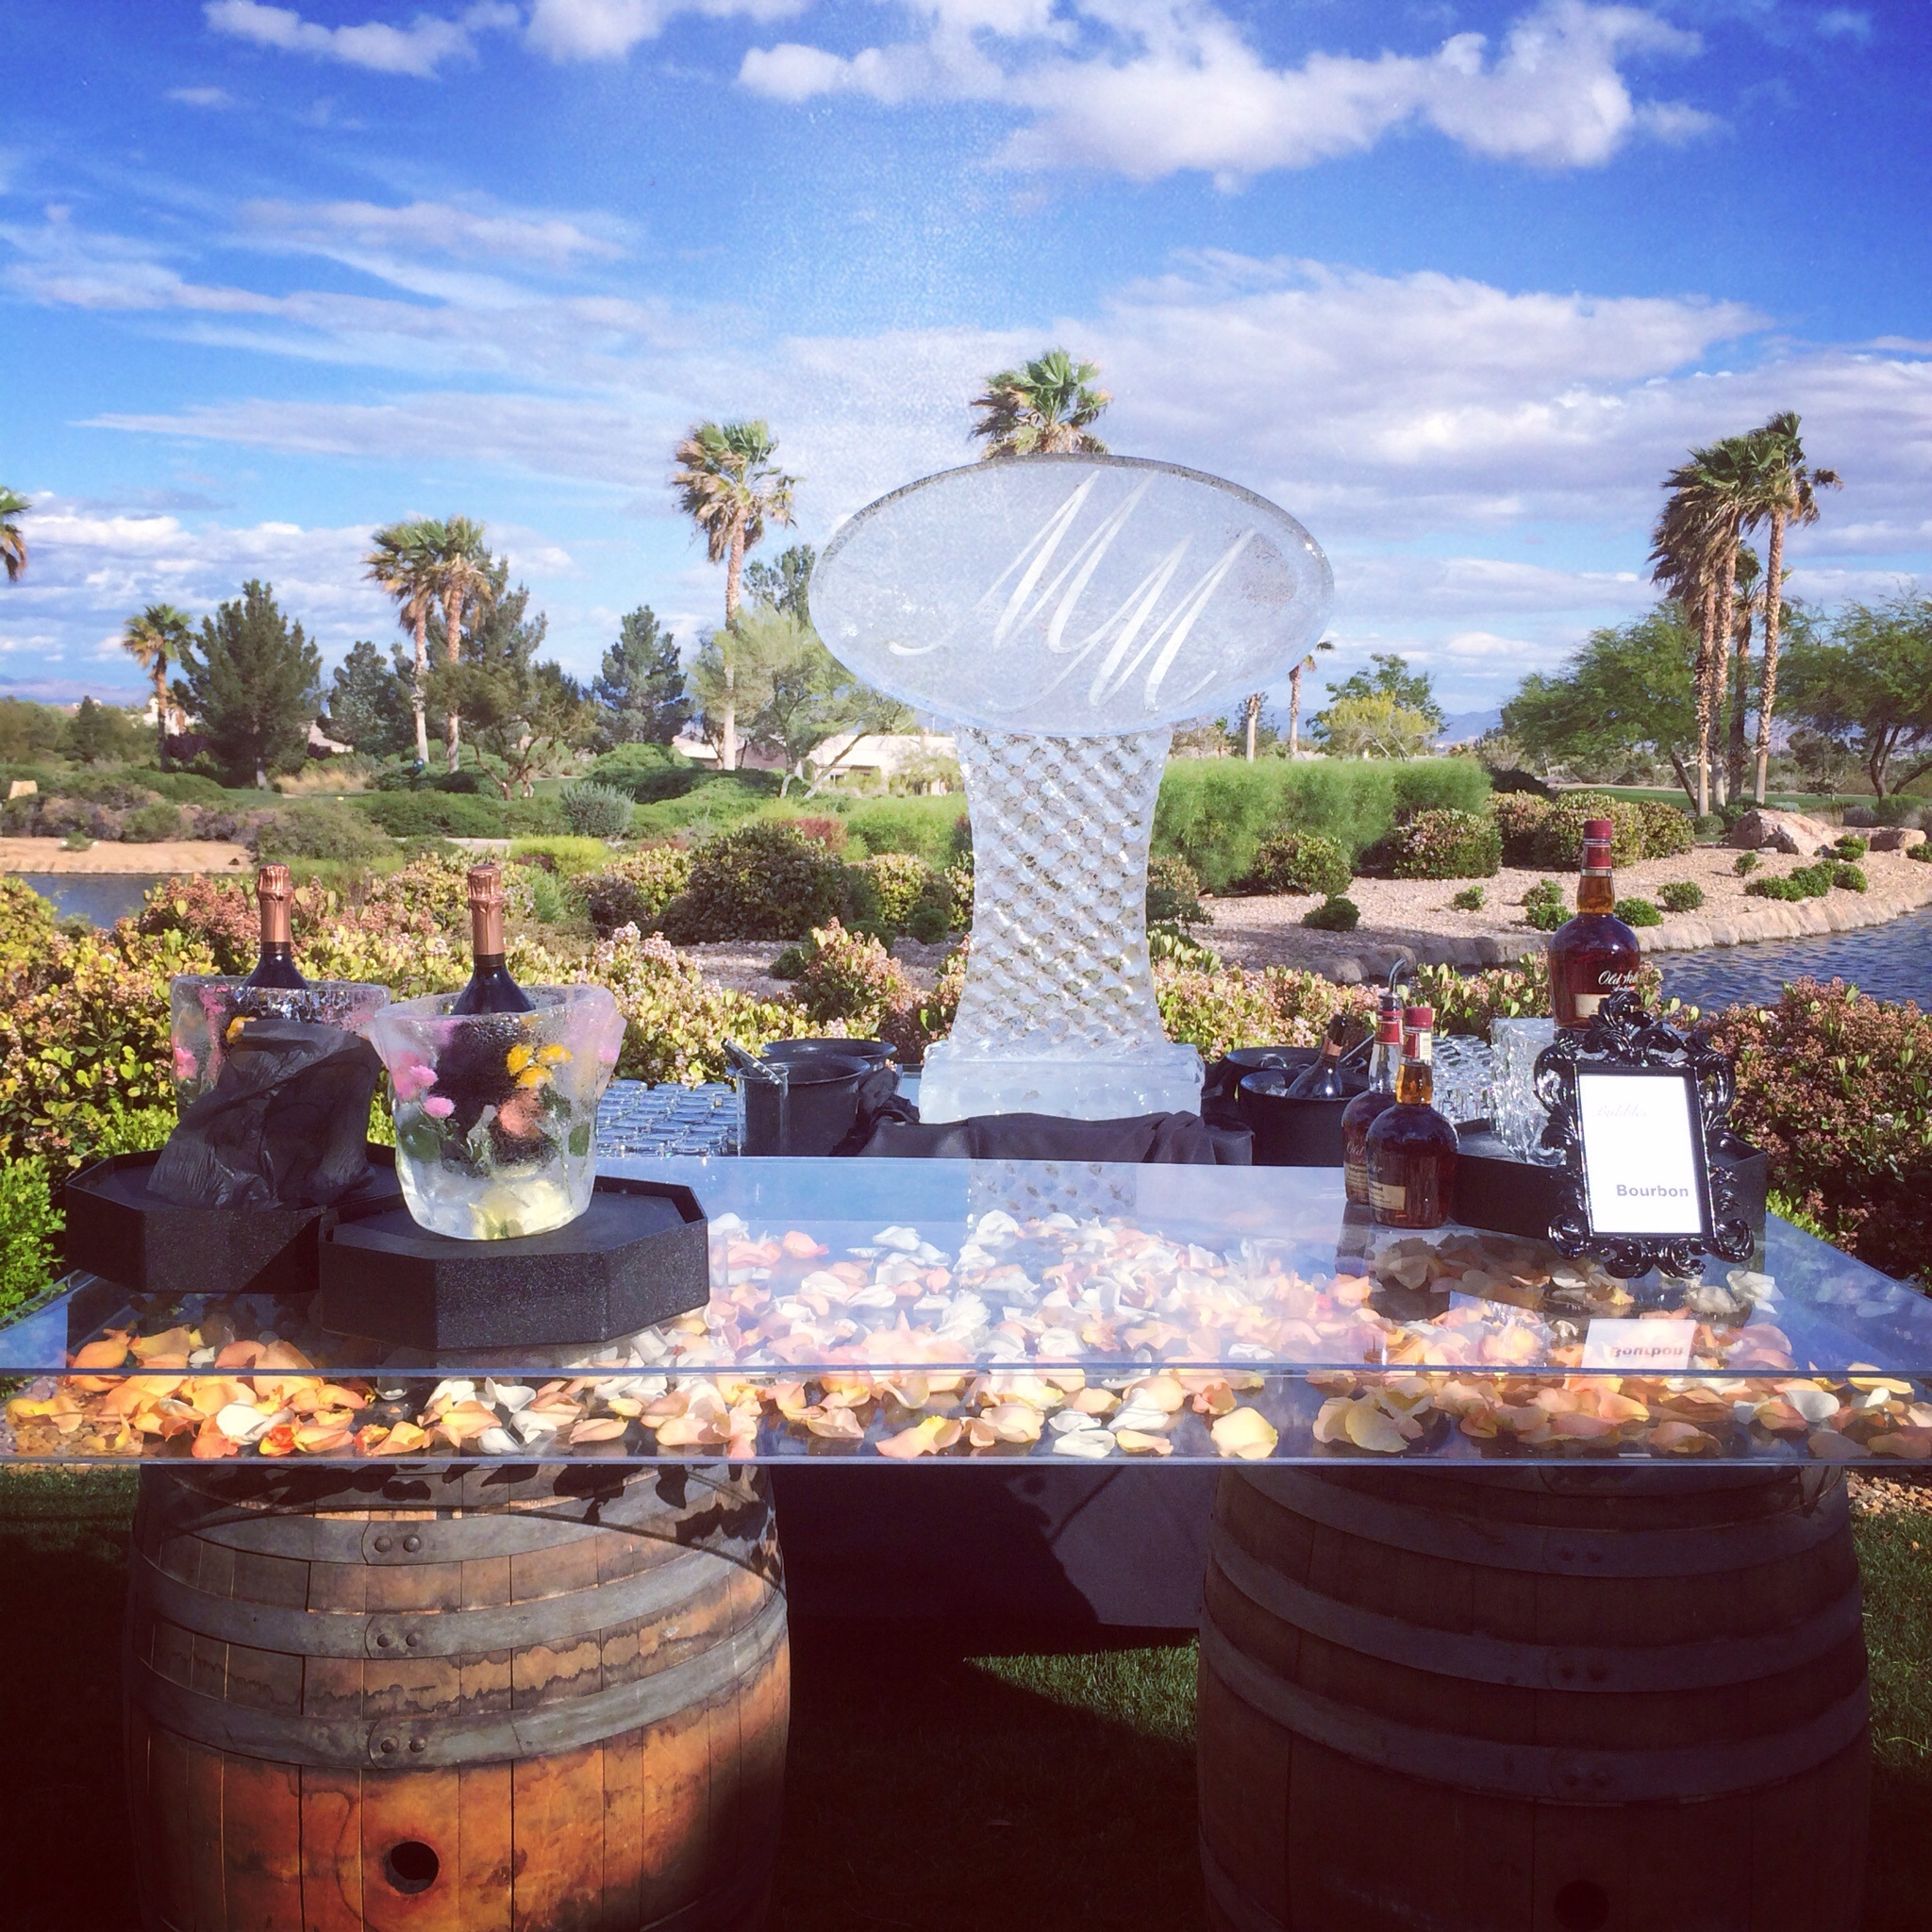 Ice, Ice Baby....Ice is making a comeback at weddings in the most beautiful way. Sculpture by  Plexi glass wine barrel display by  Sit On This .